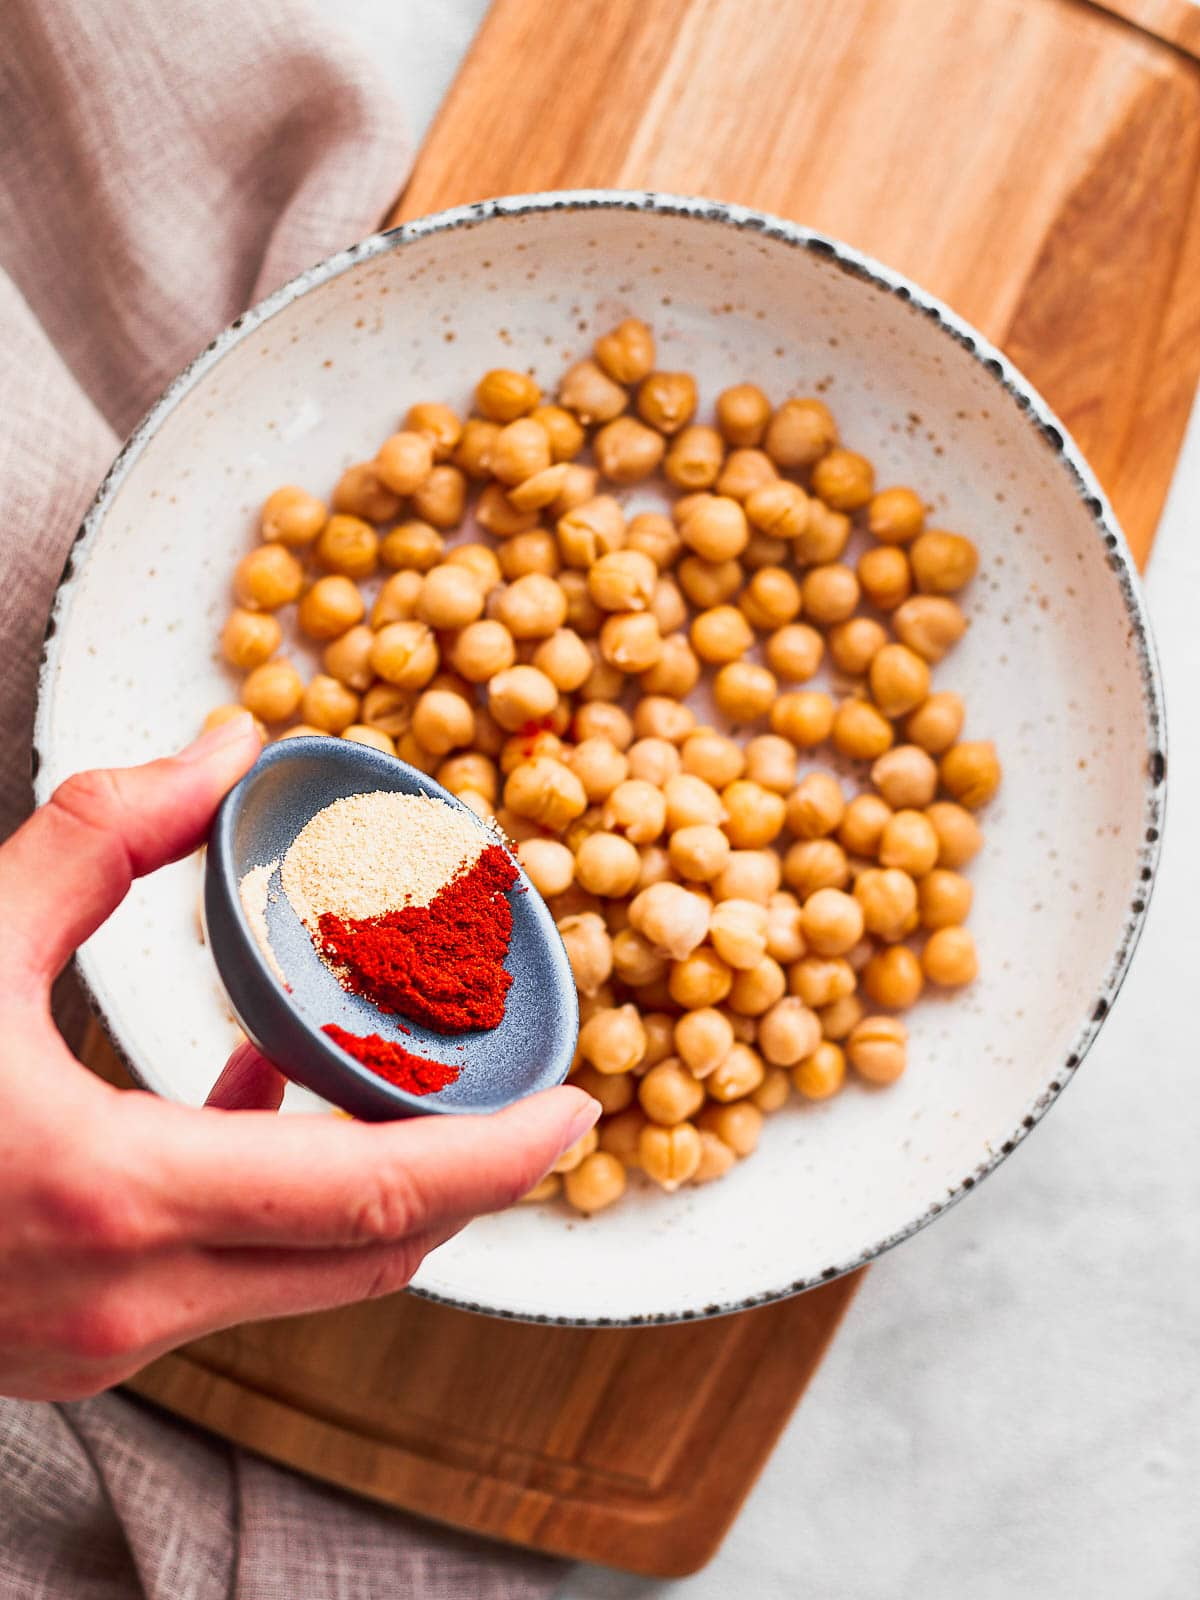 Adding spices to the chickpeas